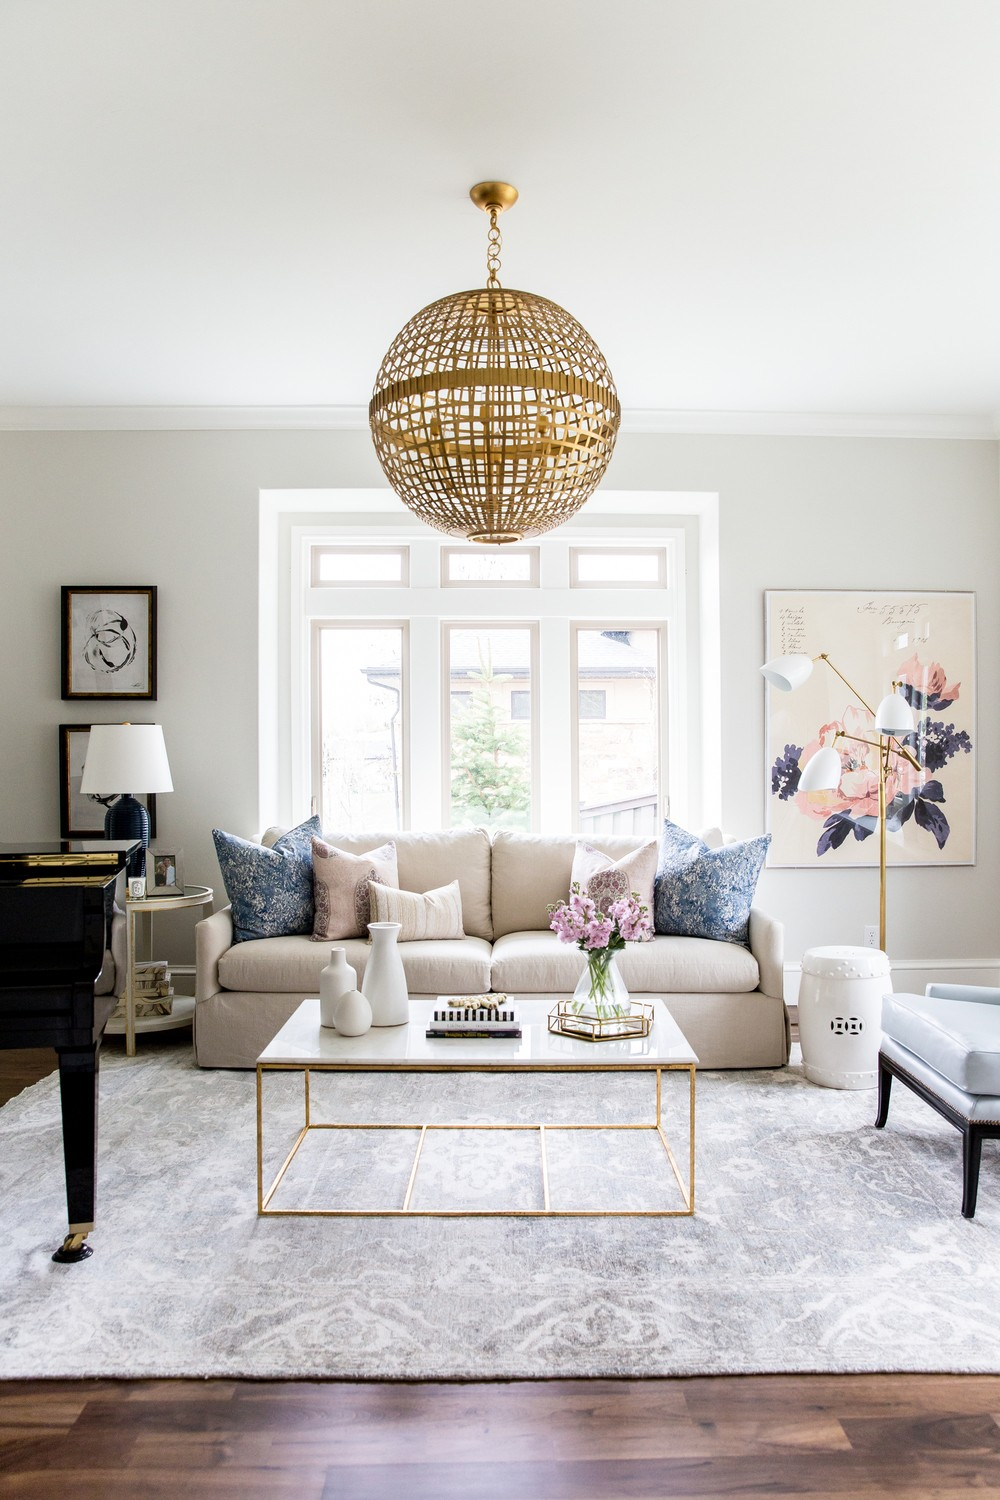 Navy,+Blush+and+Gold+Living+Room+by+Studio+McGee.jpg